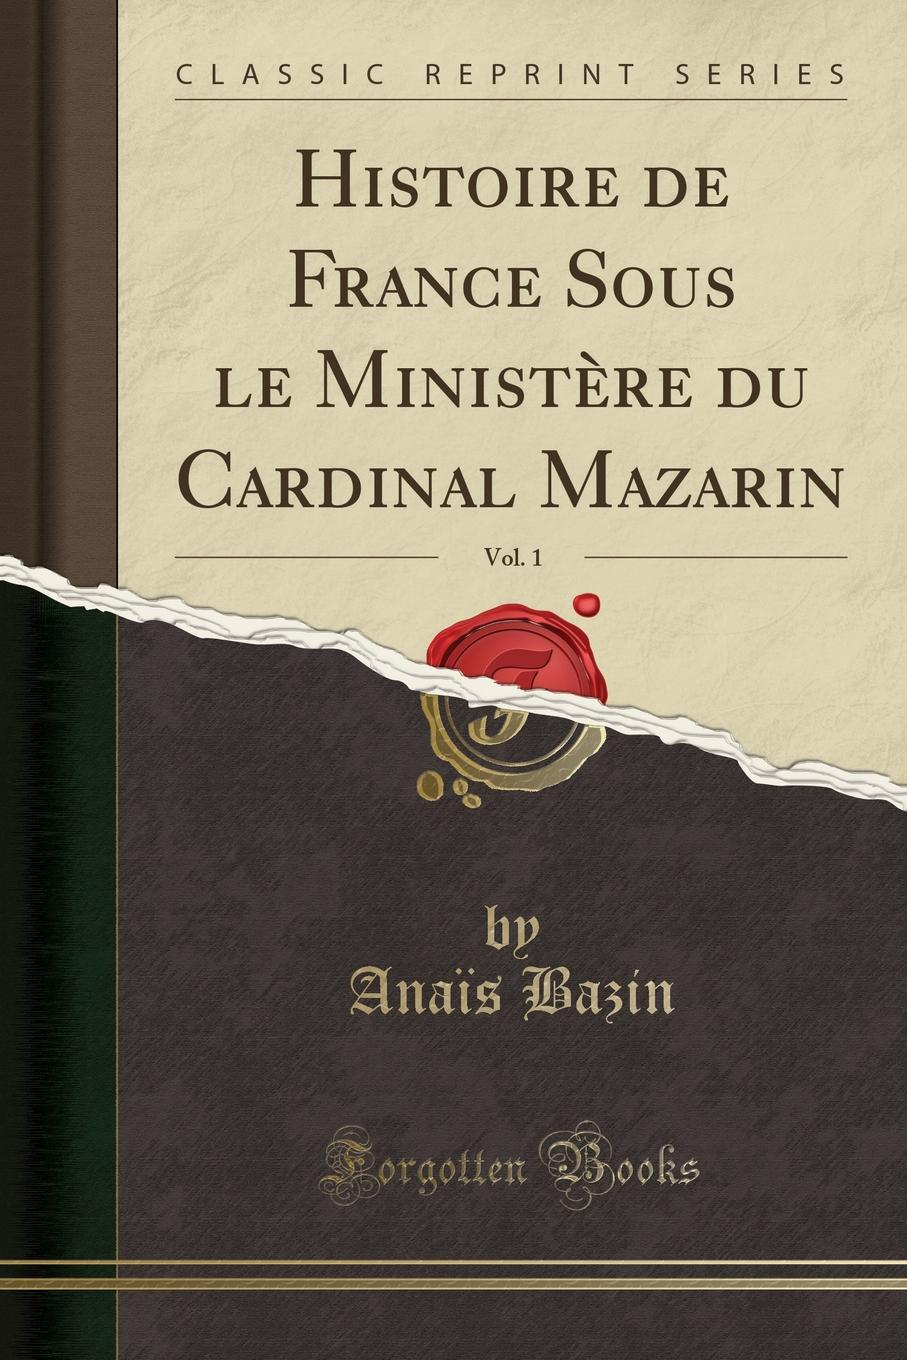 Anaïs Bazin Histoire de France Sous le Ministere du Cardinal Mazarin, Vol. 1 (Classic Reprint) 12 1 inch widescreen high resolution hd ips lcd hdmi hdmi vga av interface monitor monitor